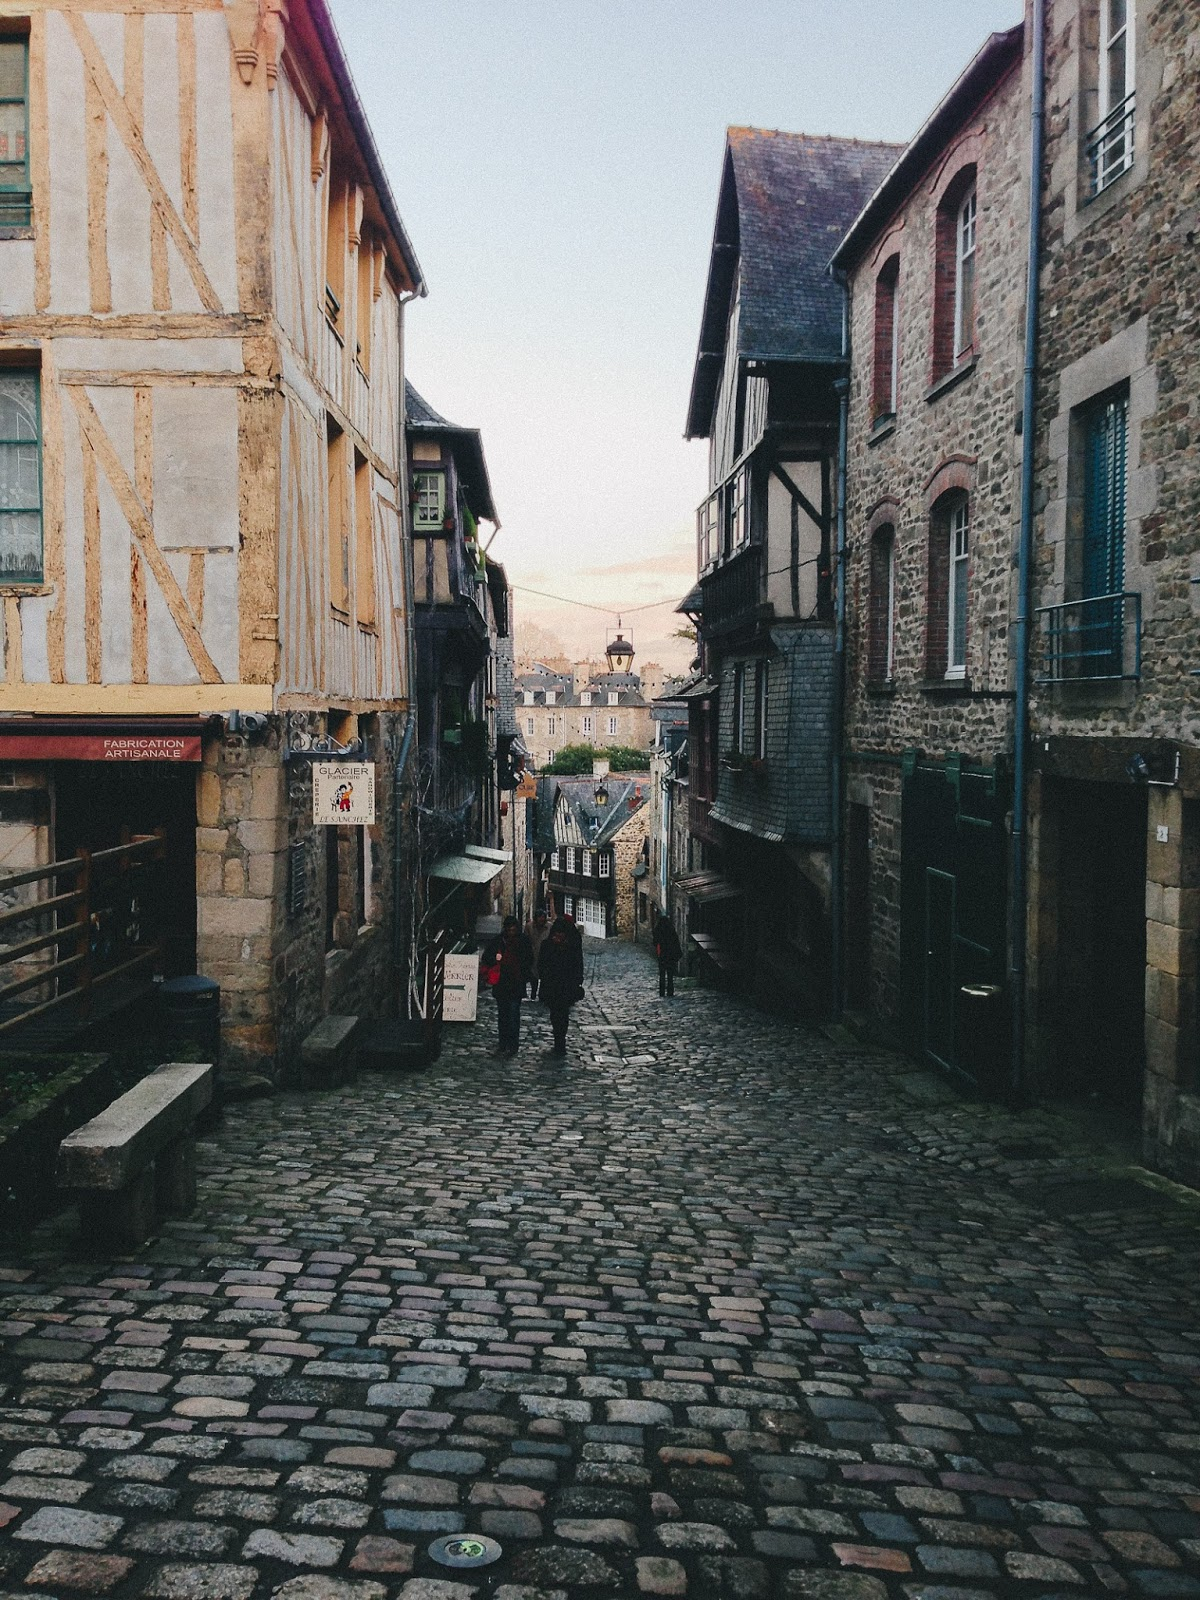 Mont Saint Michel & Medieval French Towns of Dinan, Rennes and Cancale: A Weekend in Medieval France